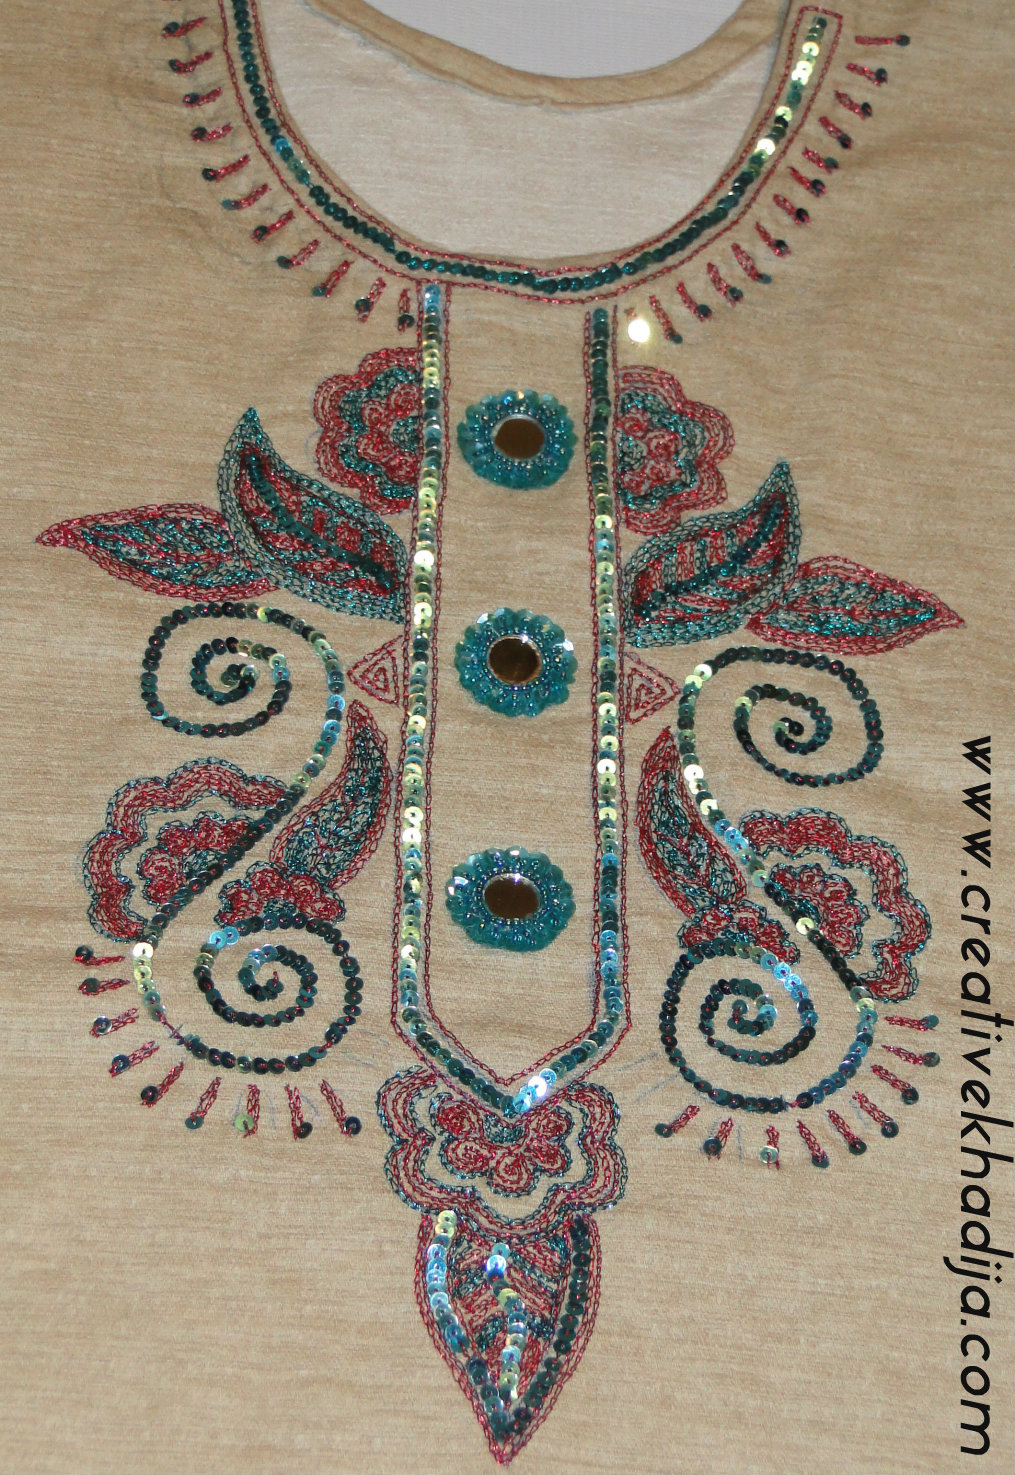 hand embroidery on shirt neckline